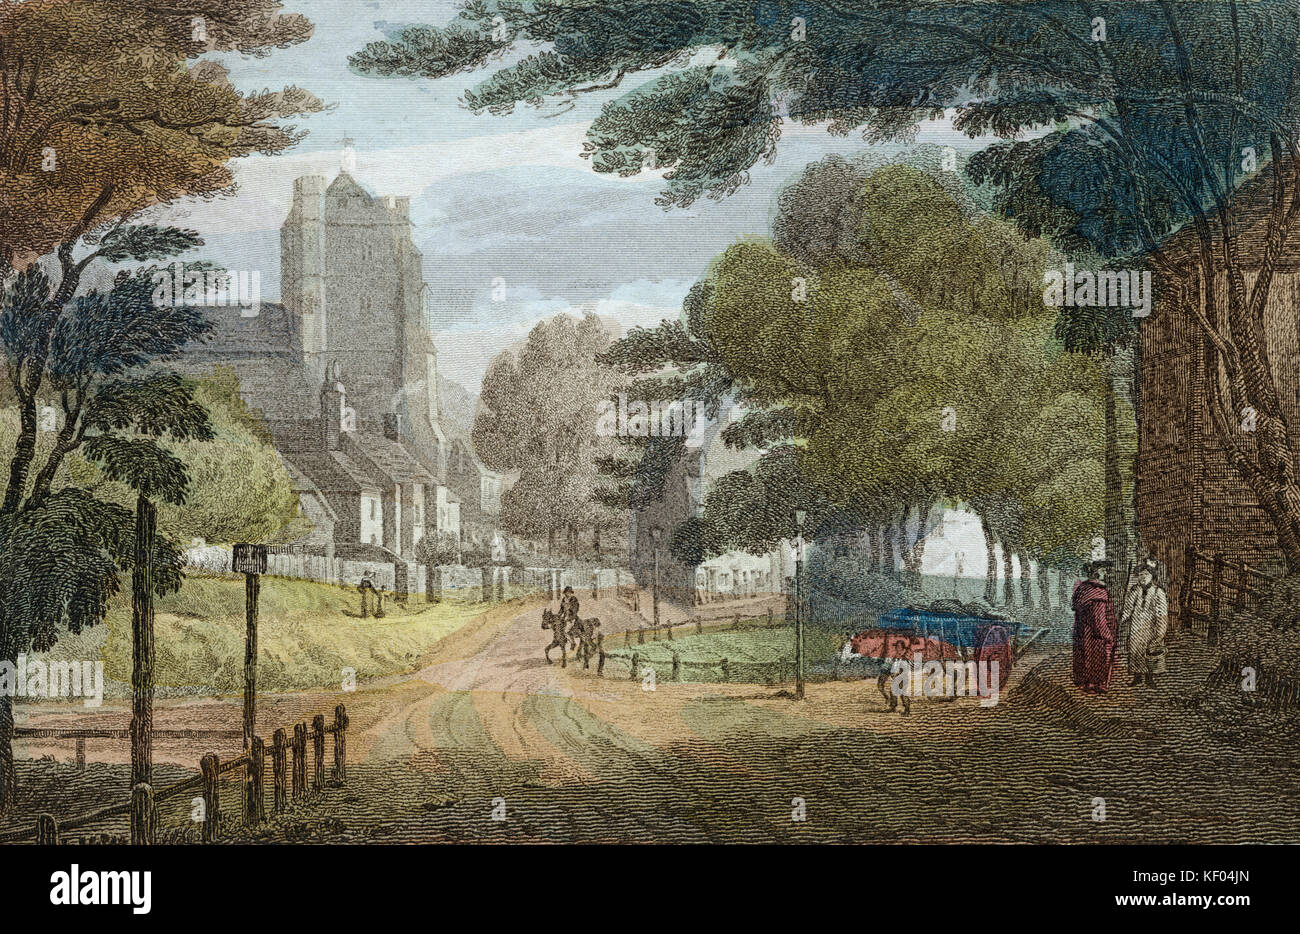 MAYSON BEETON COLLECTION. Entrance to Hastings, East Sussex (from Old London Road, showing All Saints' Church). - Stock Image